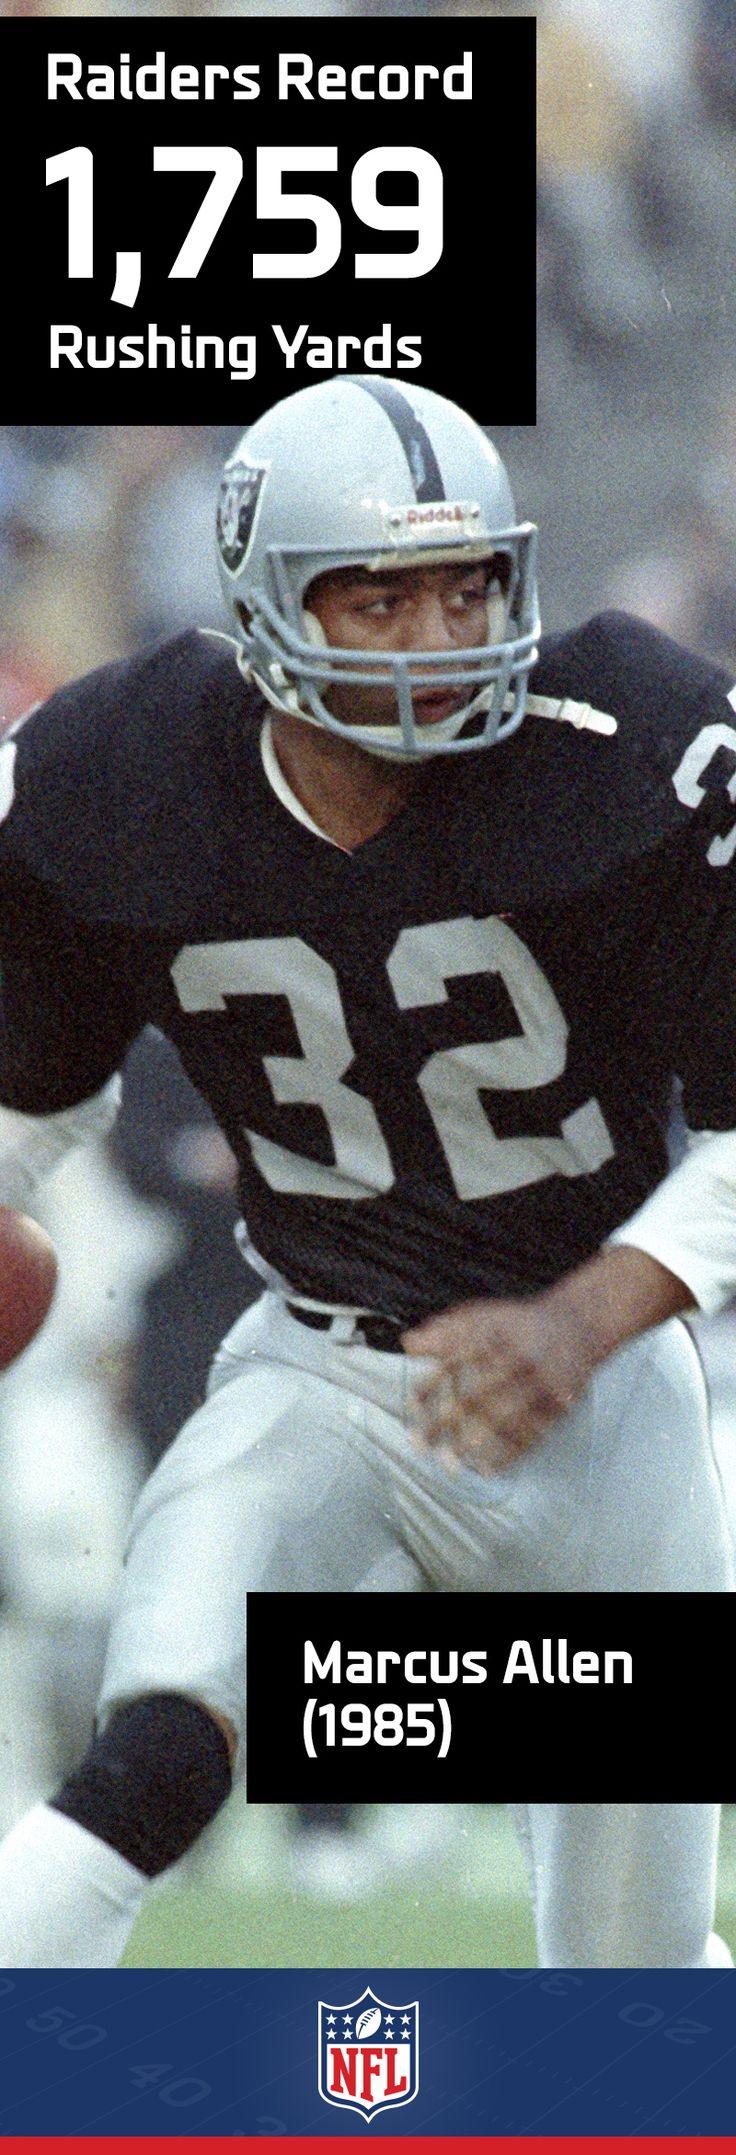 Marcus Allen was simply unstoppable. He was the first player to reach both 10,000 rushing yards and 5,000 receiving yards in his career.